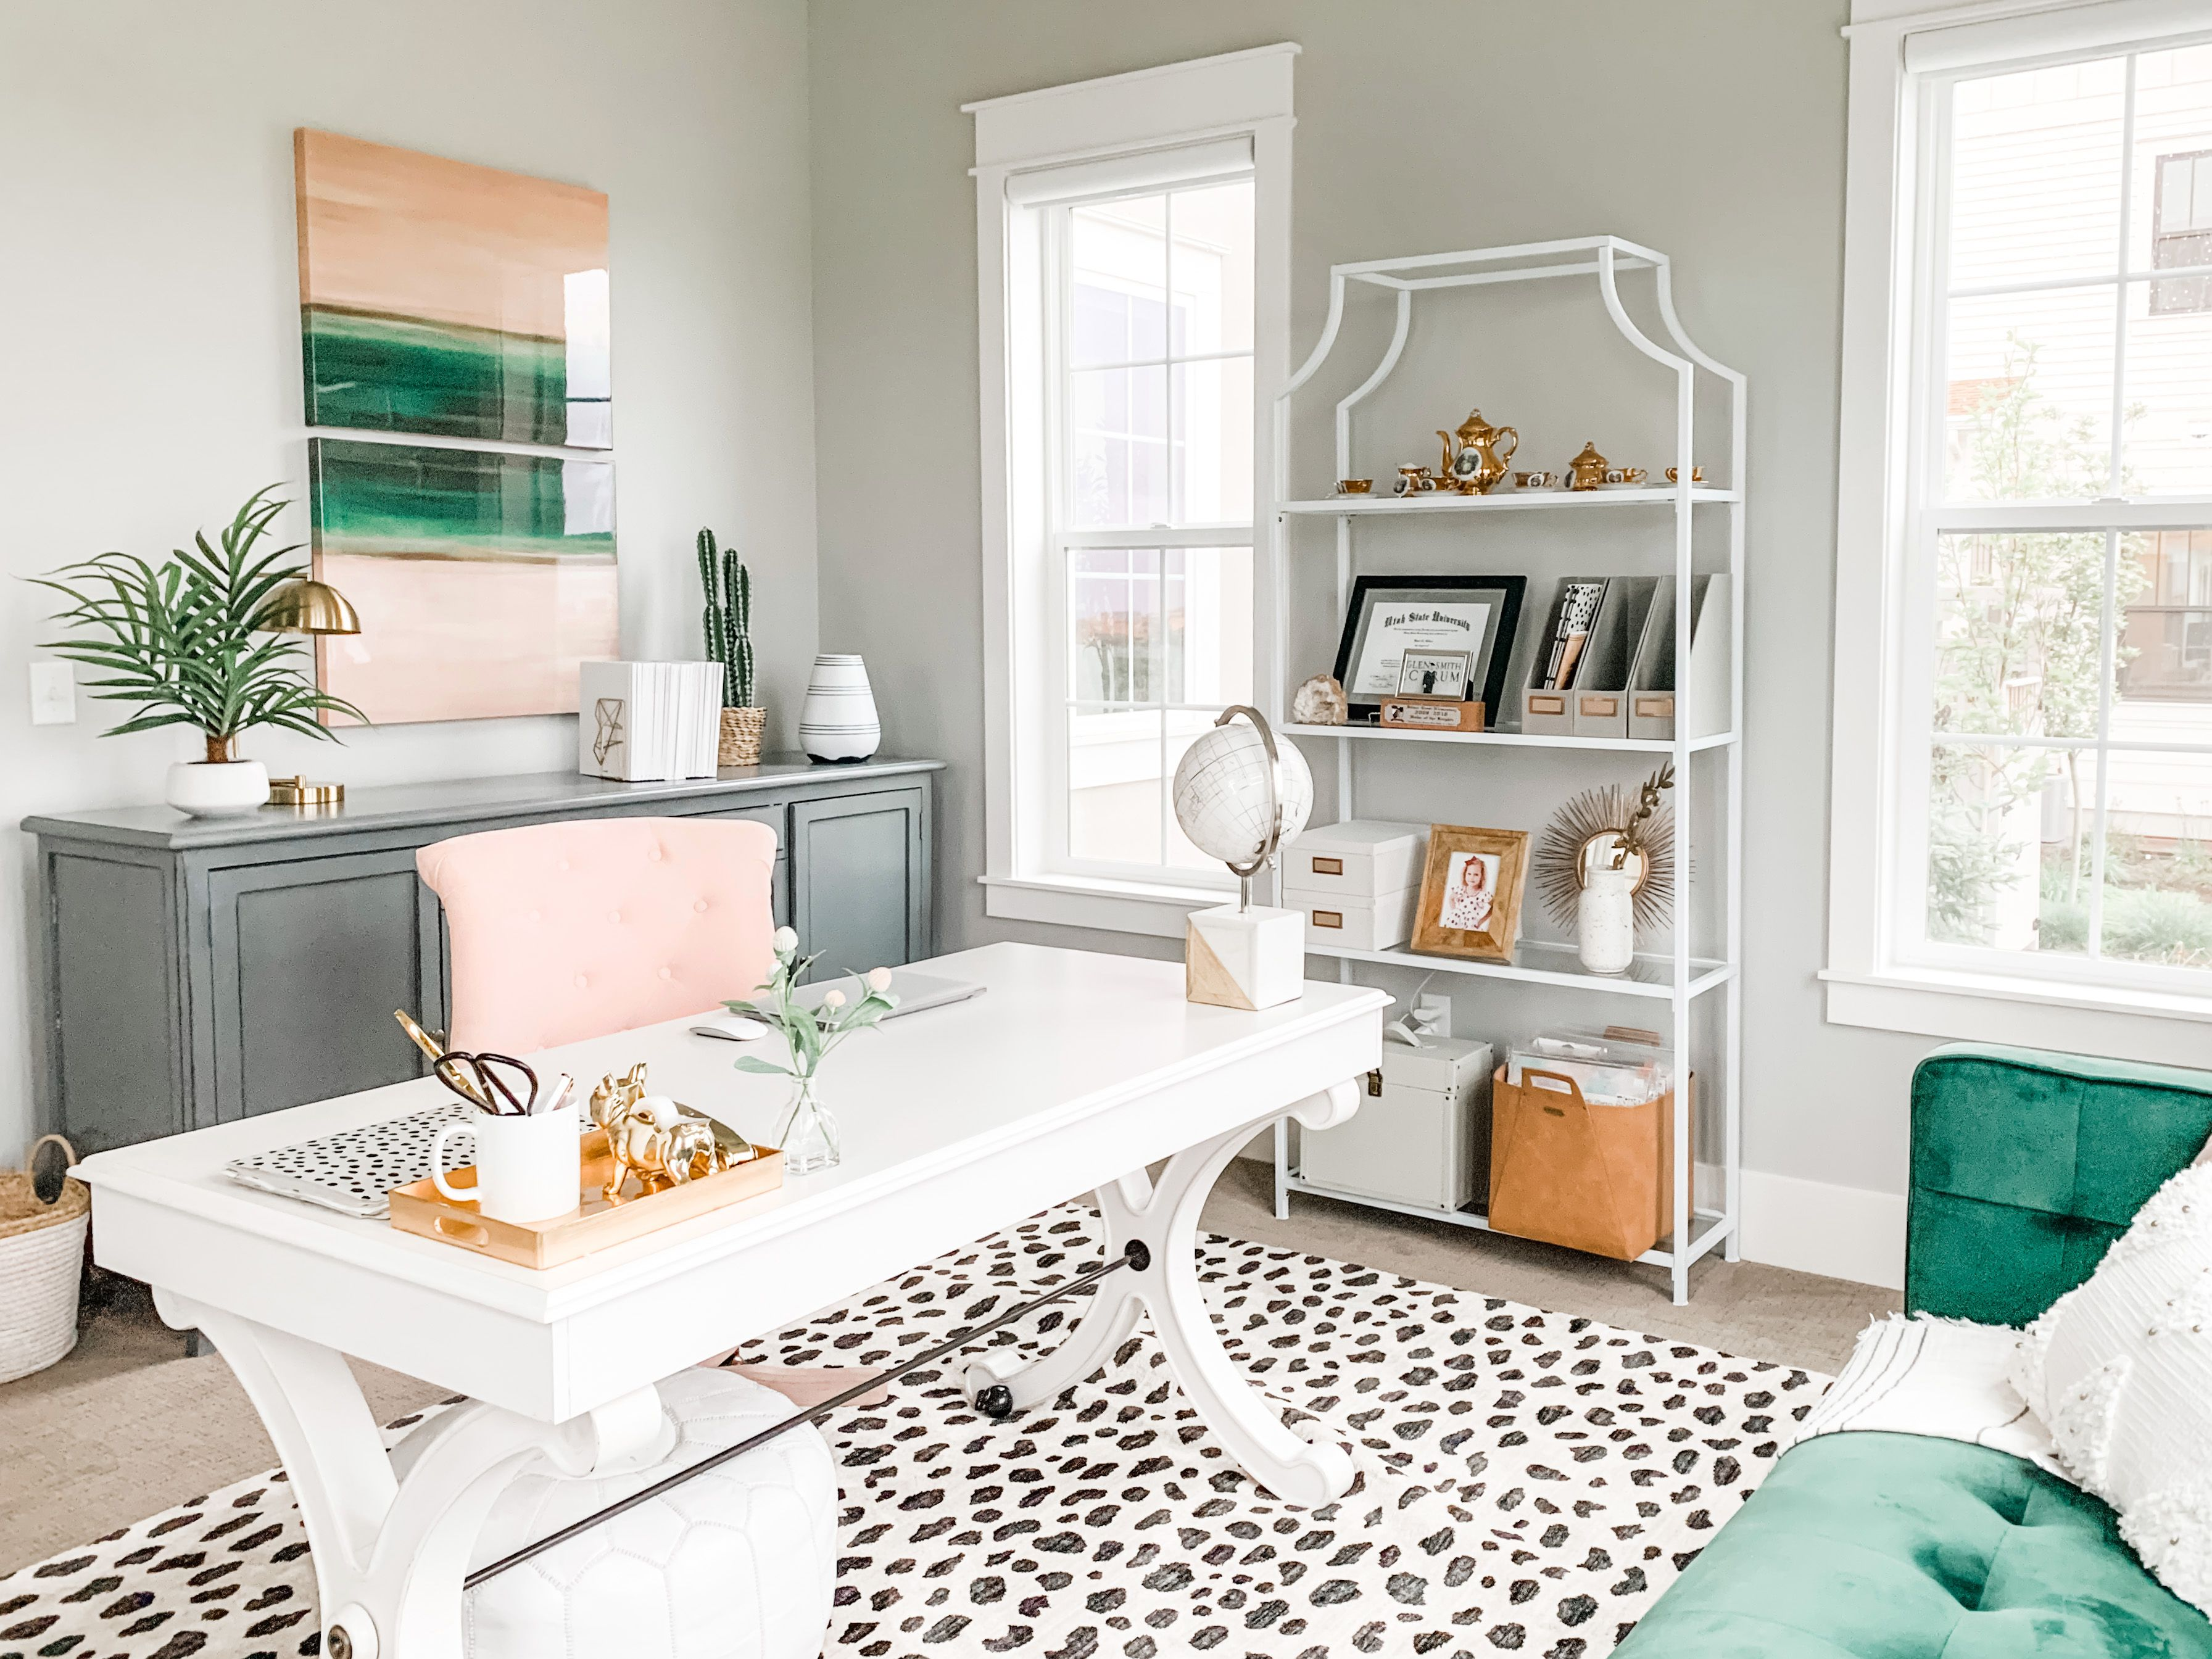 Design The Home Office Of Your Dreams With Chatbooks Home Office Decor Photos